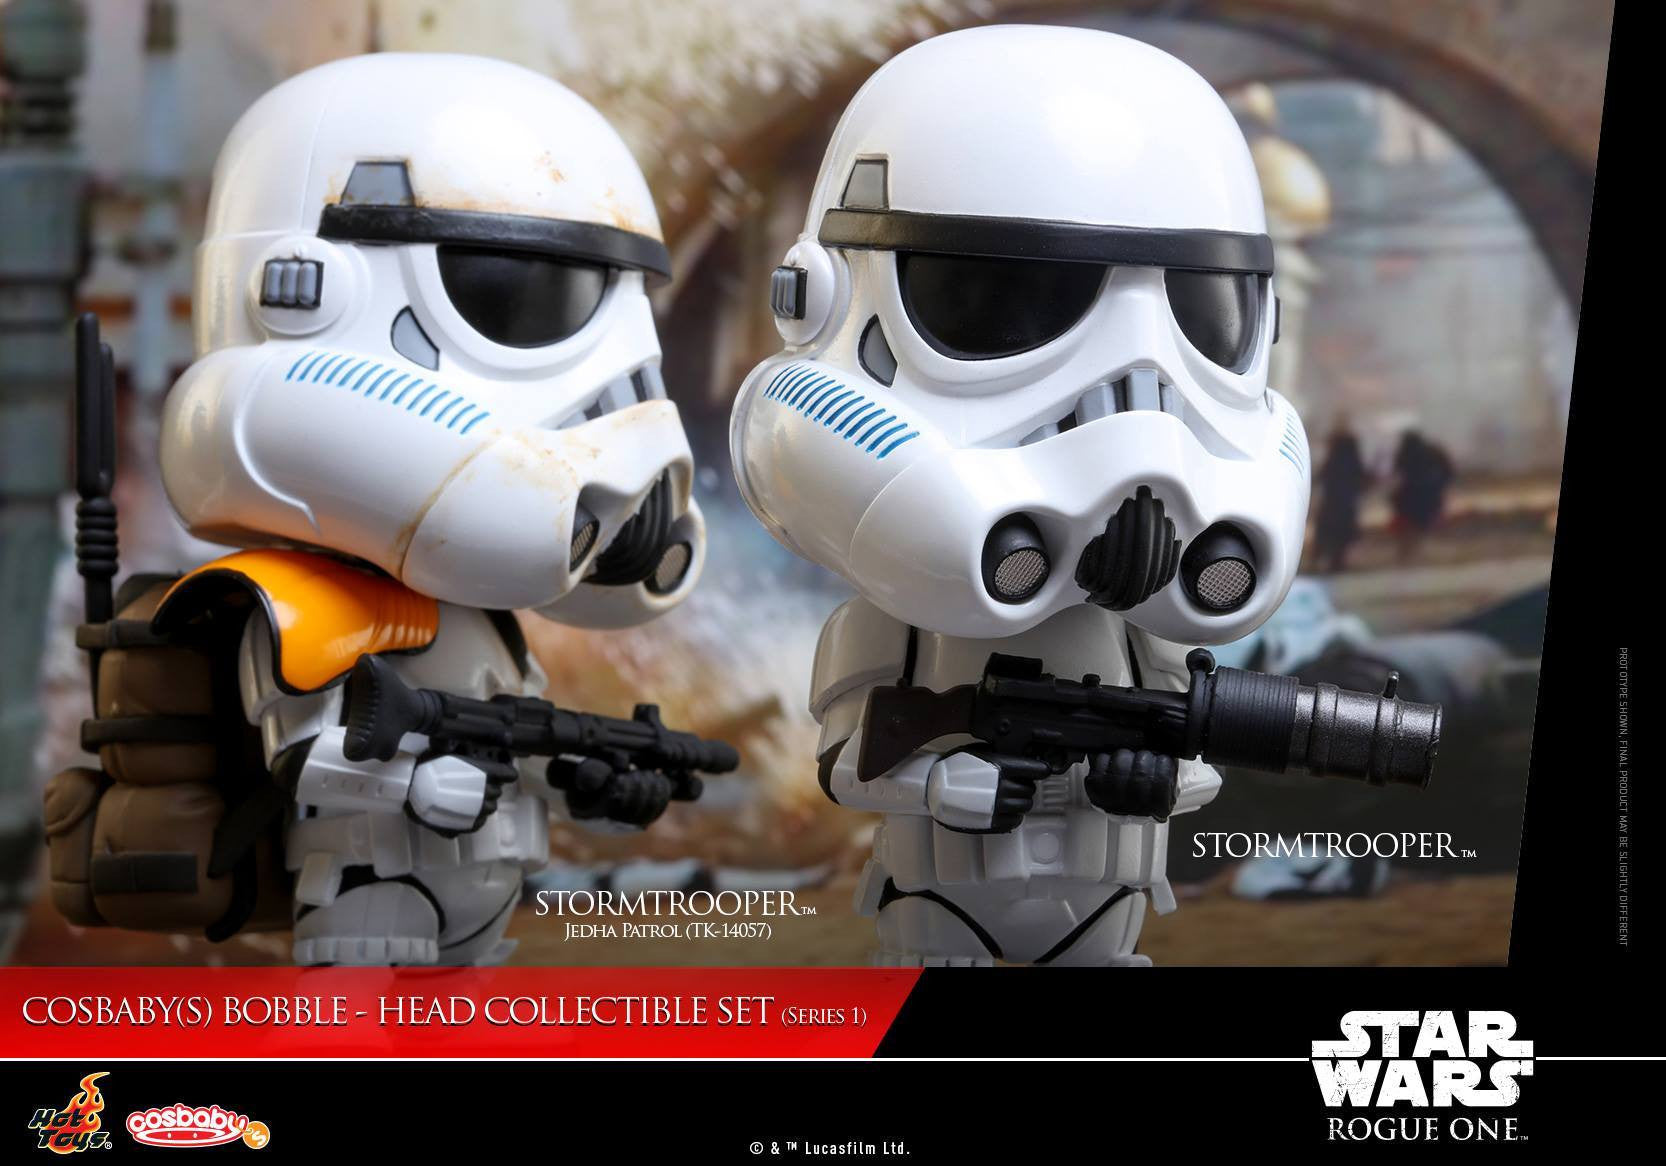 (IN STOCK) Hot Toys - COSB335 - Rogue One: A Star Wars Story - Cosbaby Bobble-Head (Series 1) Set of 6 - Marvelous Toys - 21